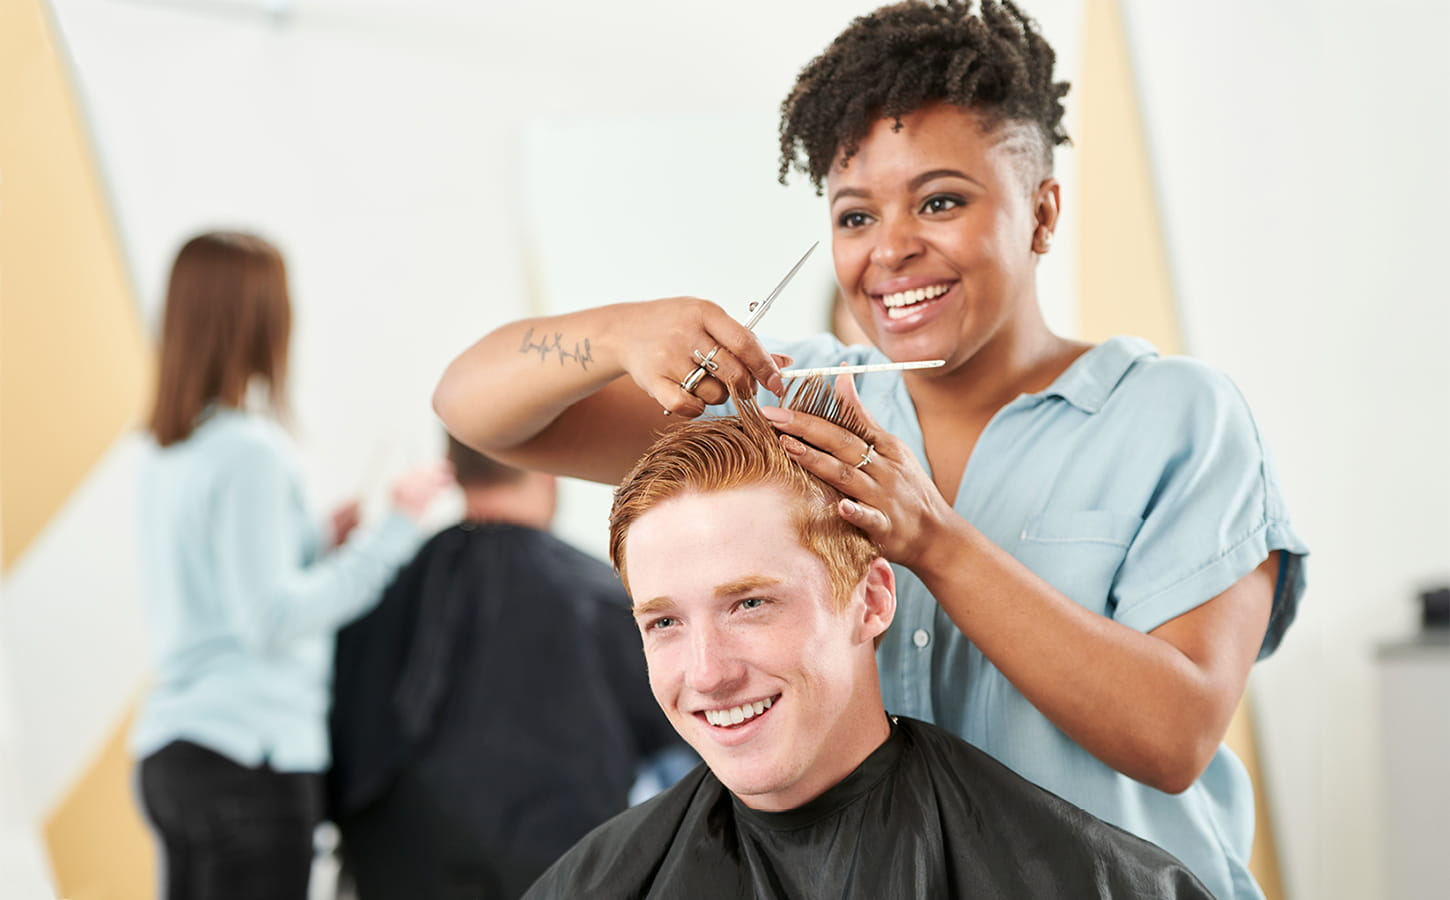 Customer getting haircut